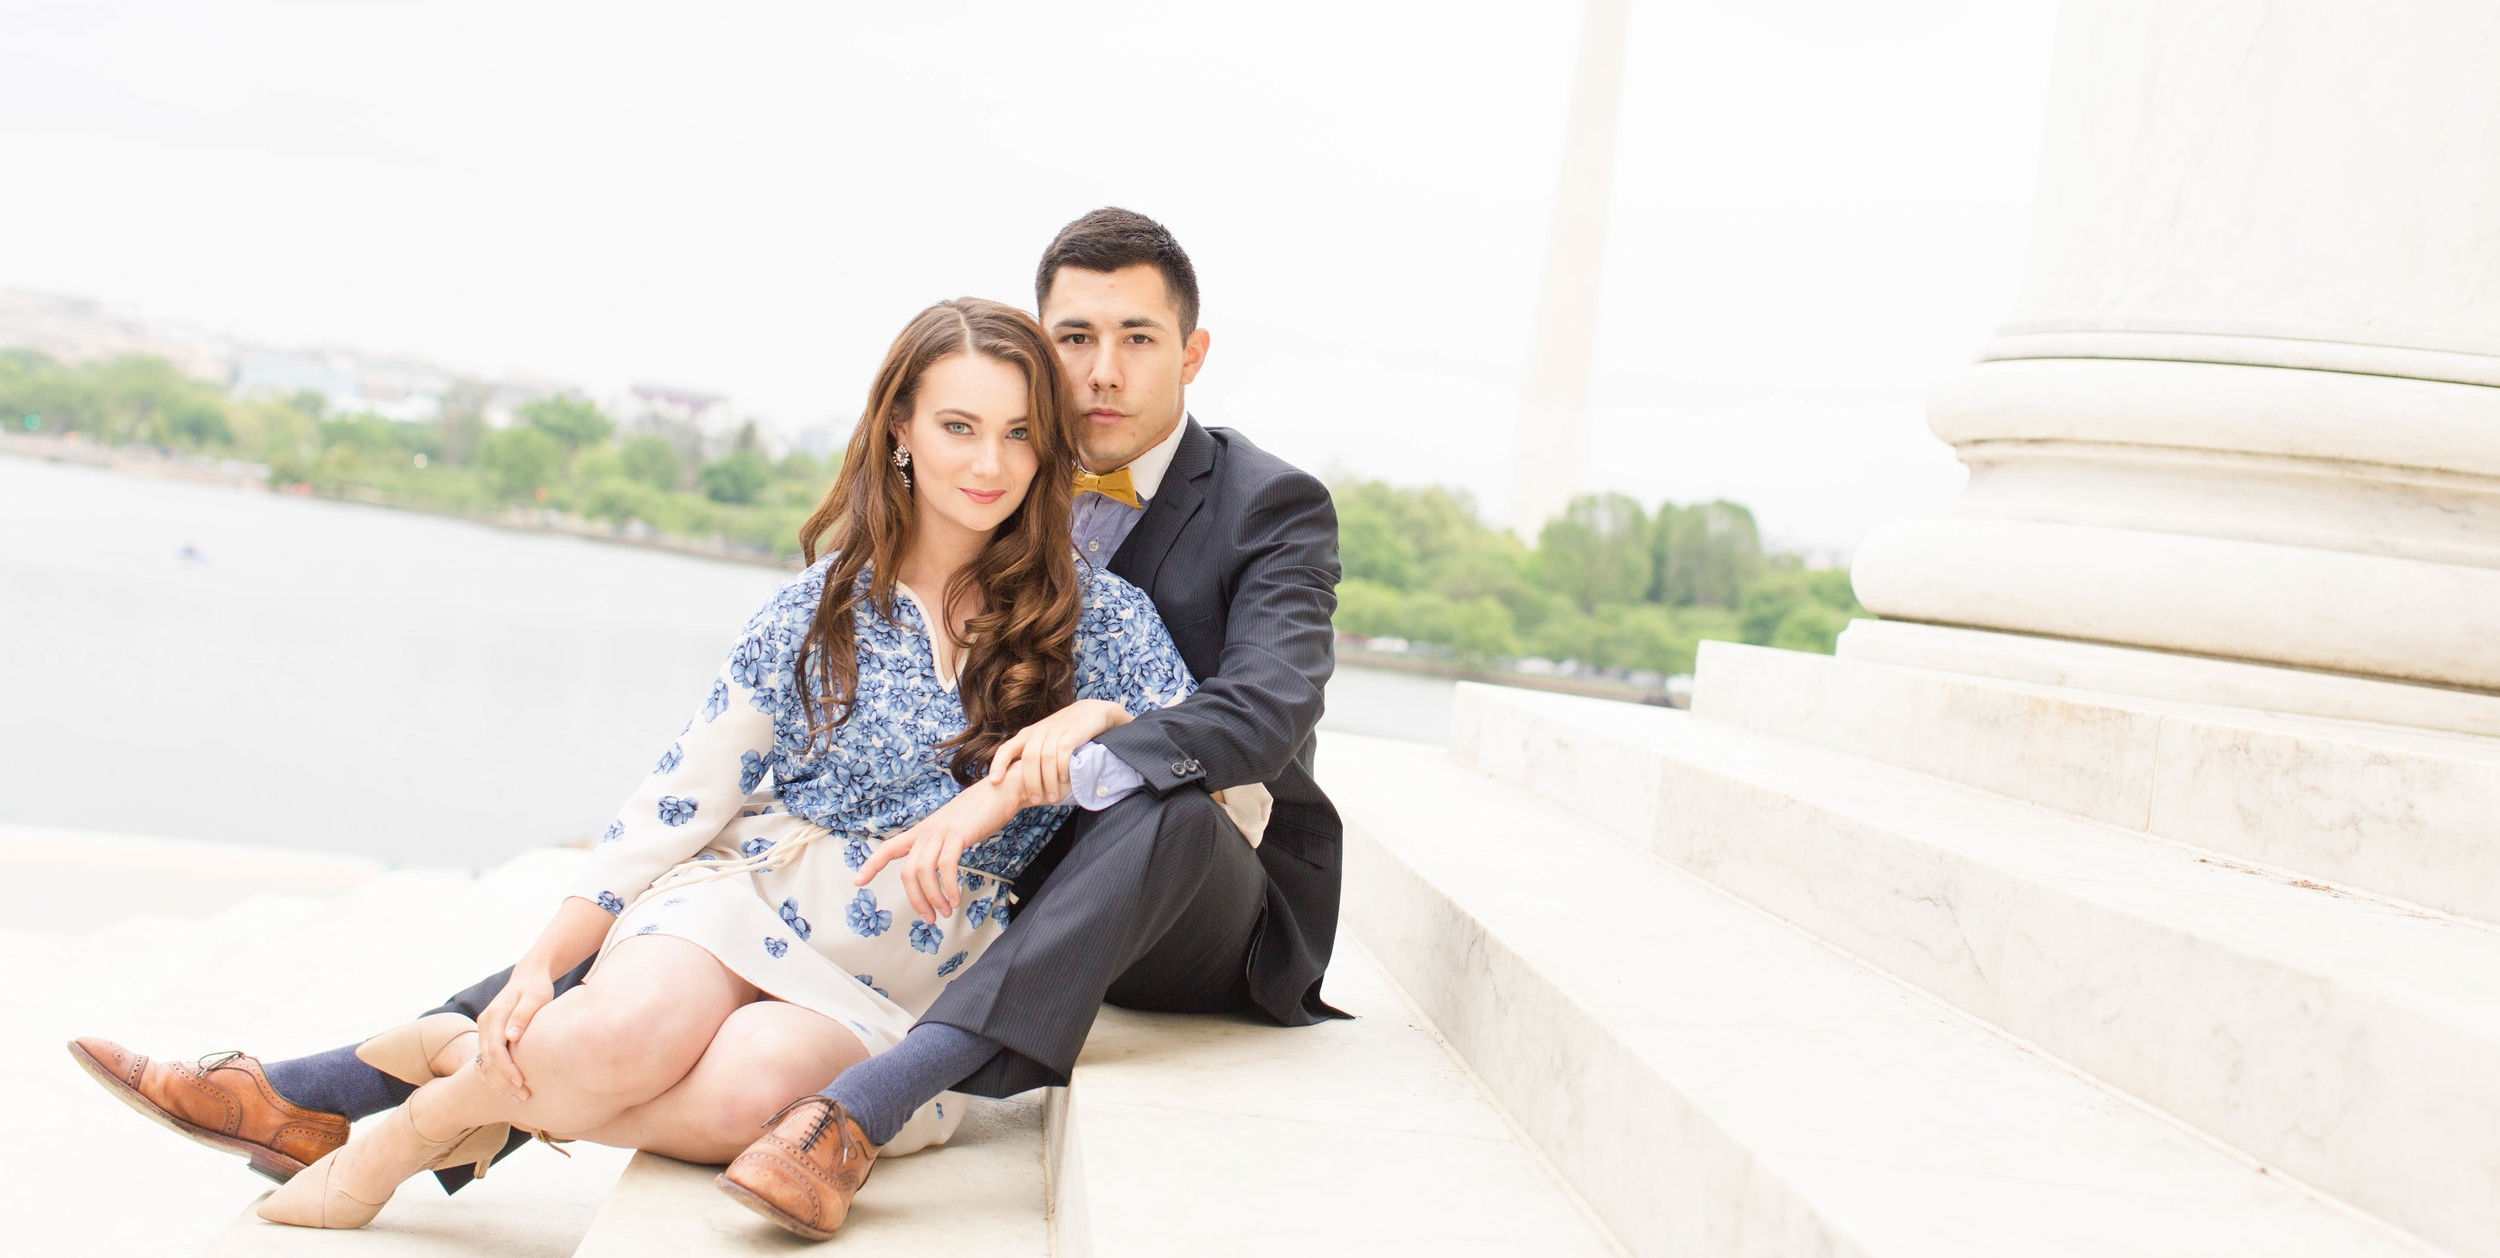 Virginia_Engagement_Photographer_Julia_Weaver_Photography